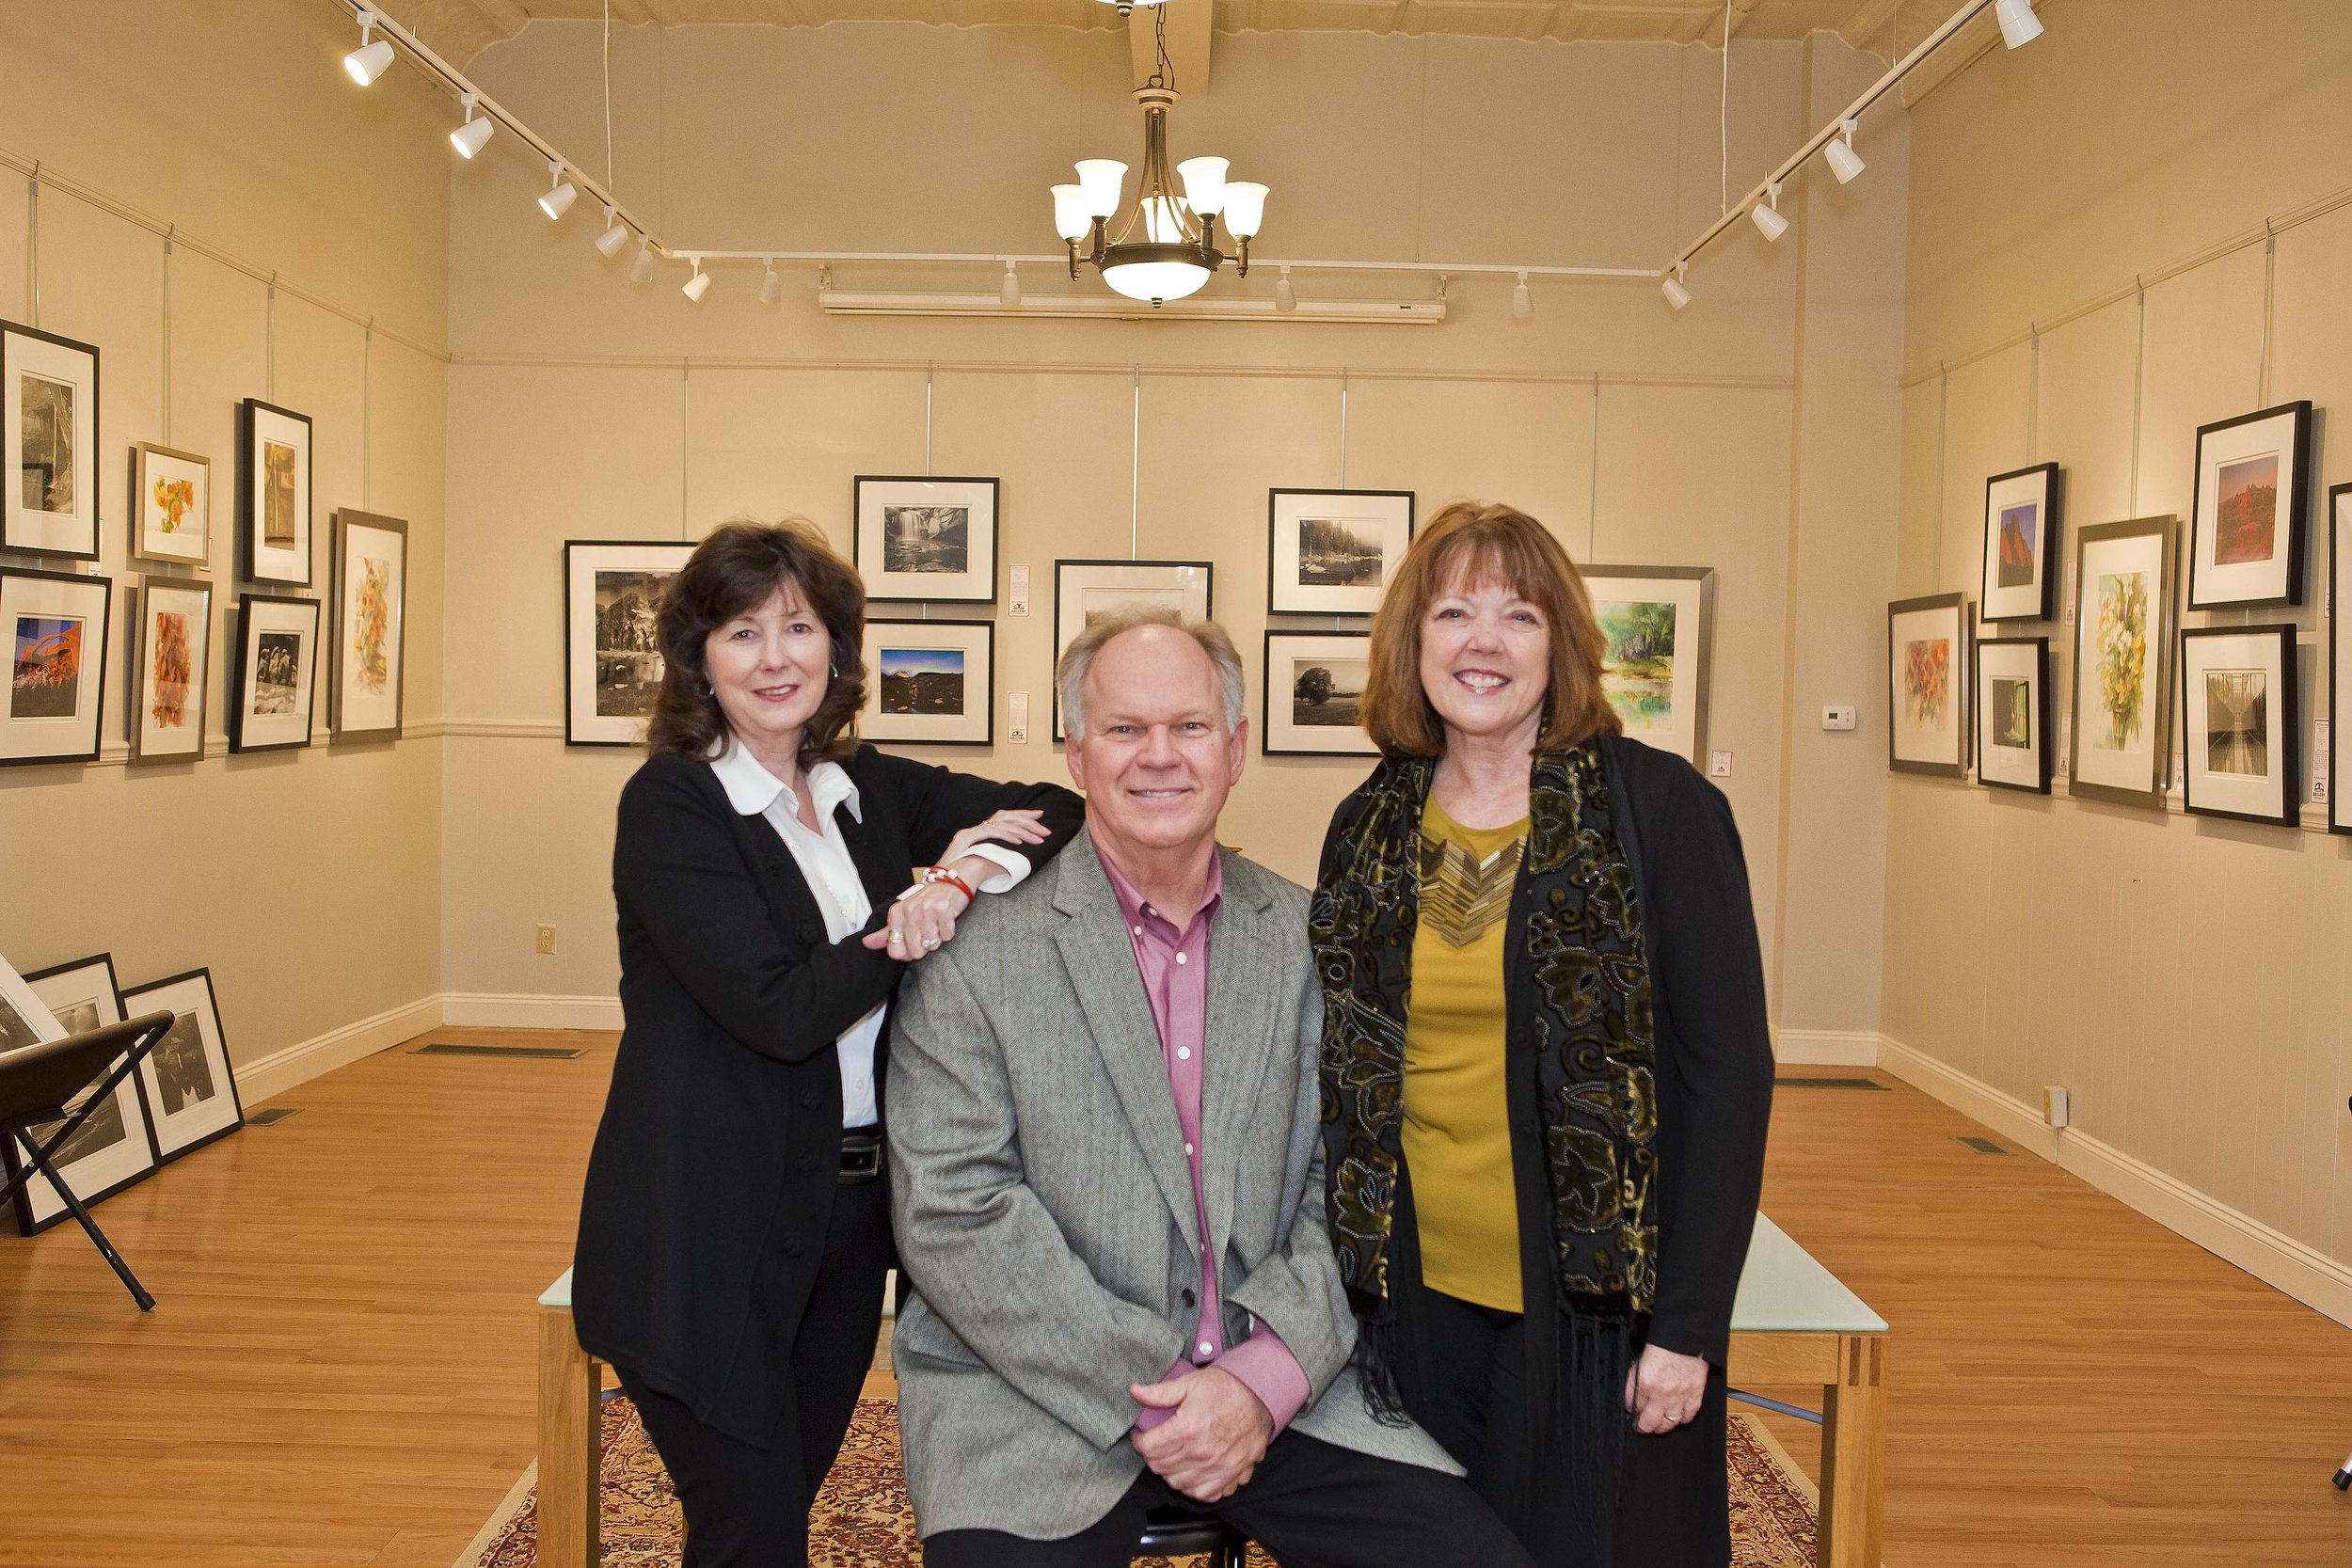 Deb Waymire, Alan McConnell, and Rena Brouwer, featured artists of Art Sense: Across the Lanscape. April 13 - May 10, 2018 in the Lilian Fendig Gallery